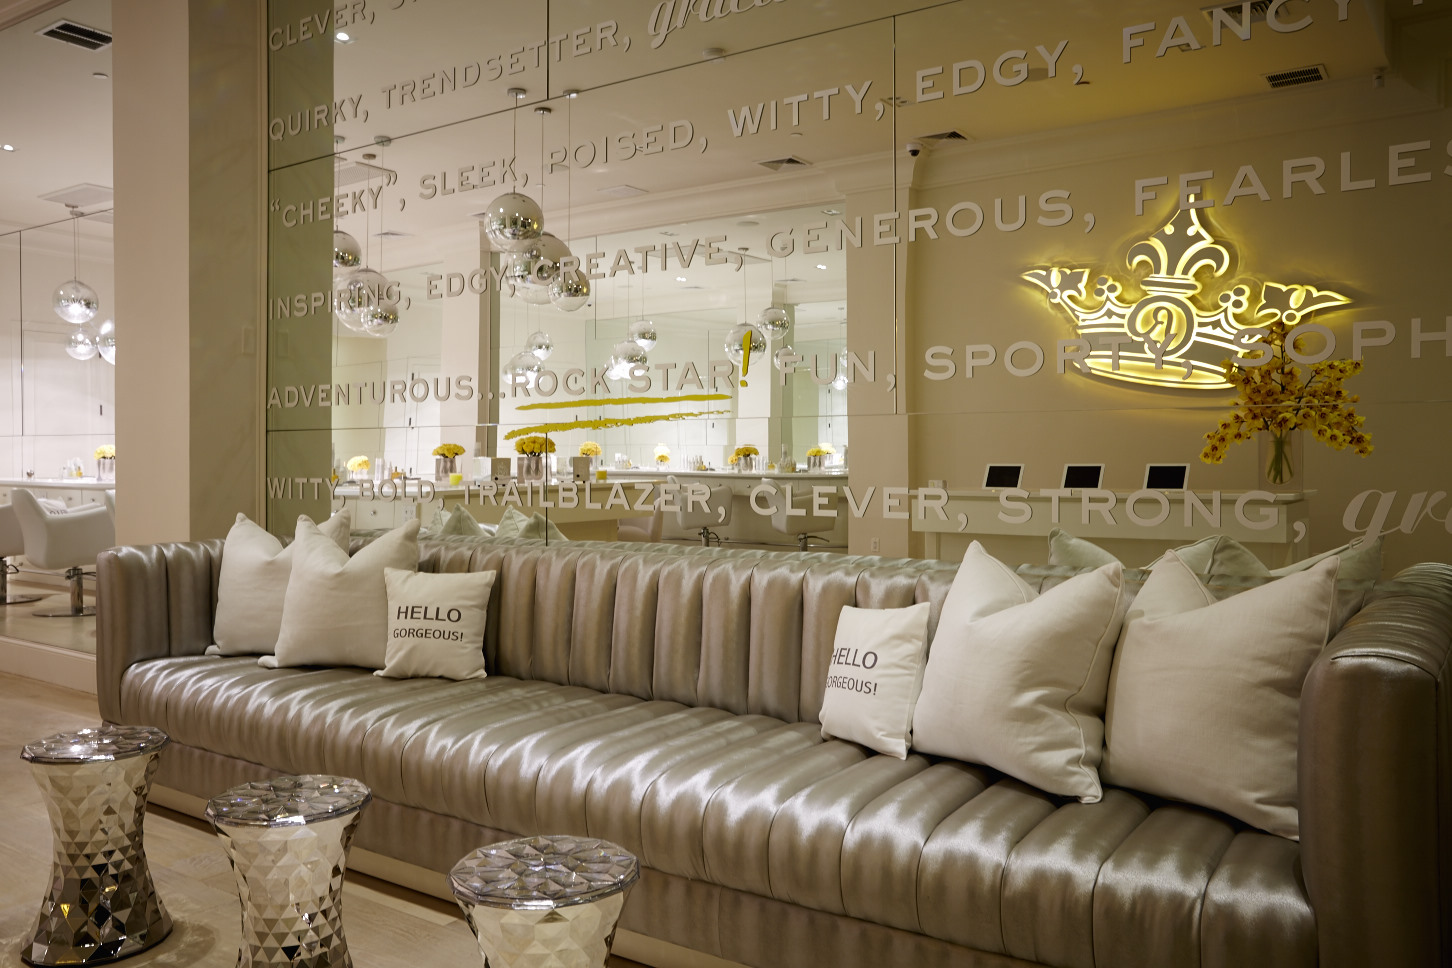 rpzl salon extension blow dry bar interview beauty and the beat blog